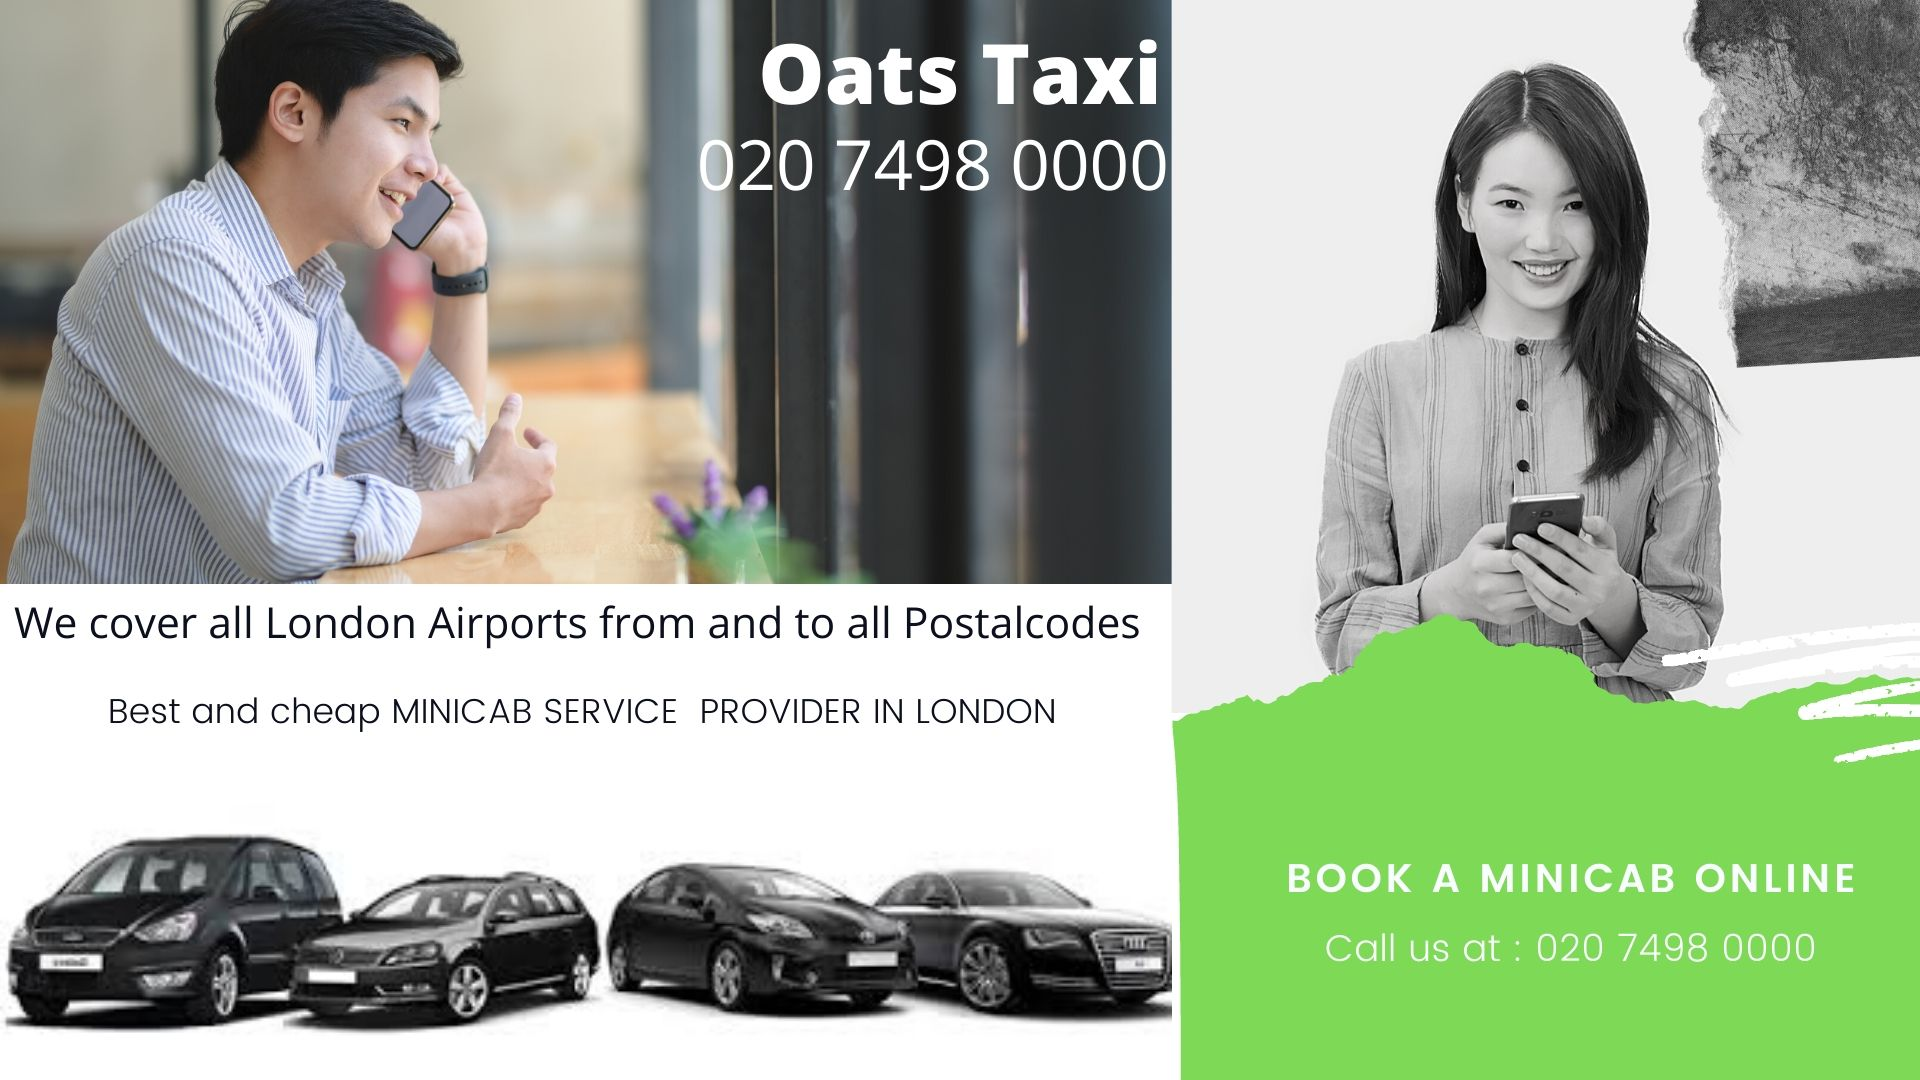 Taxi Office Near BURNS ROAD, Battersea SW11, Taxi From Battersea SW11 To Gatwick Airport